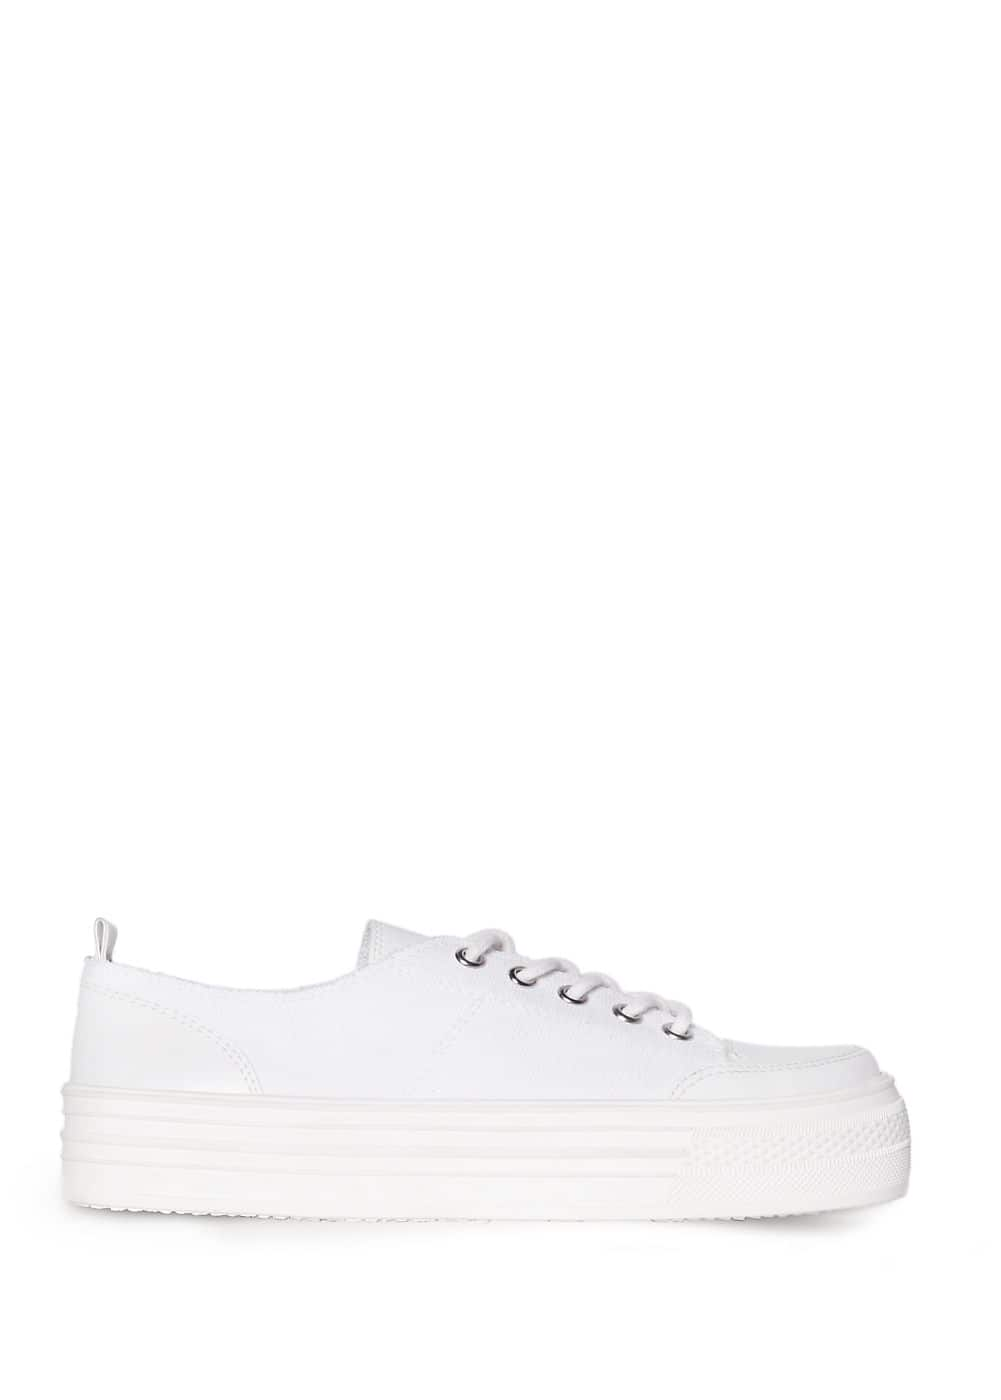 Flatform canvas sneakers